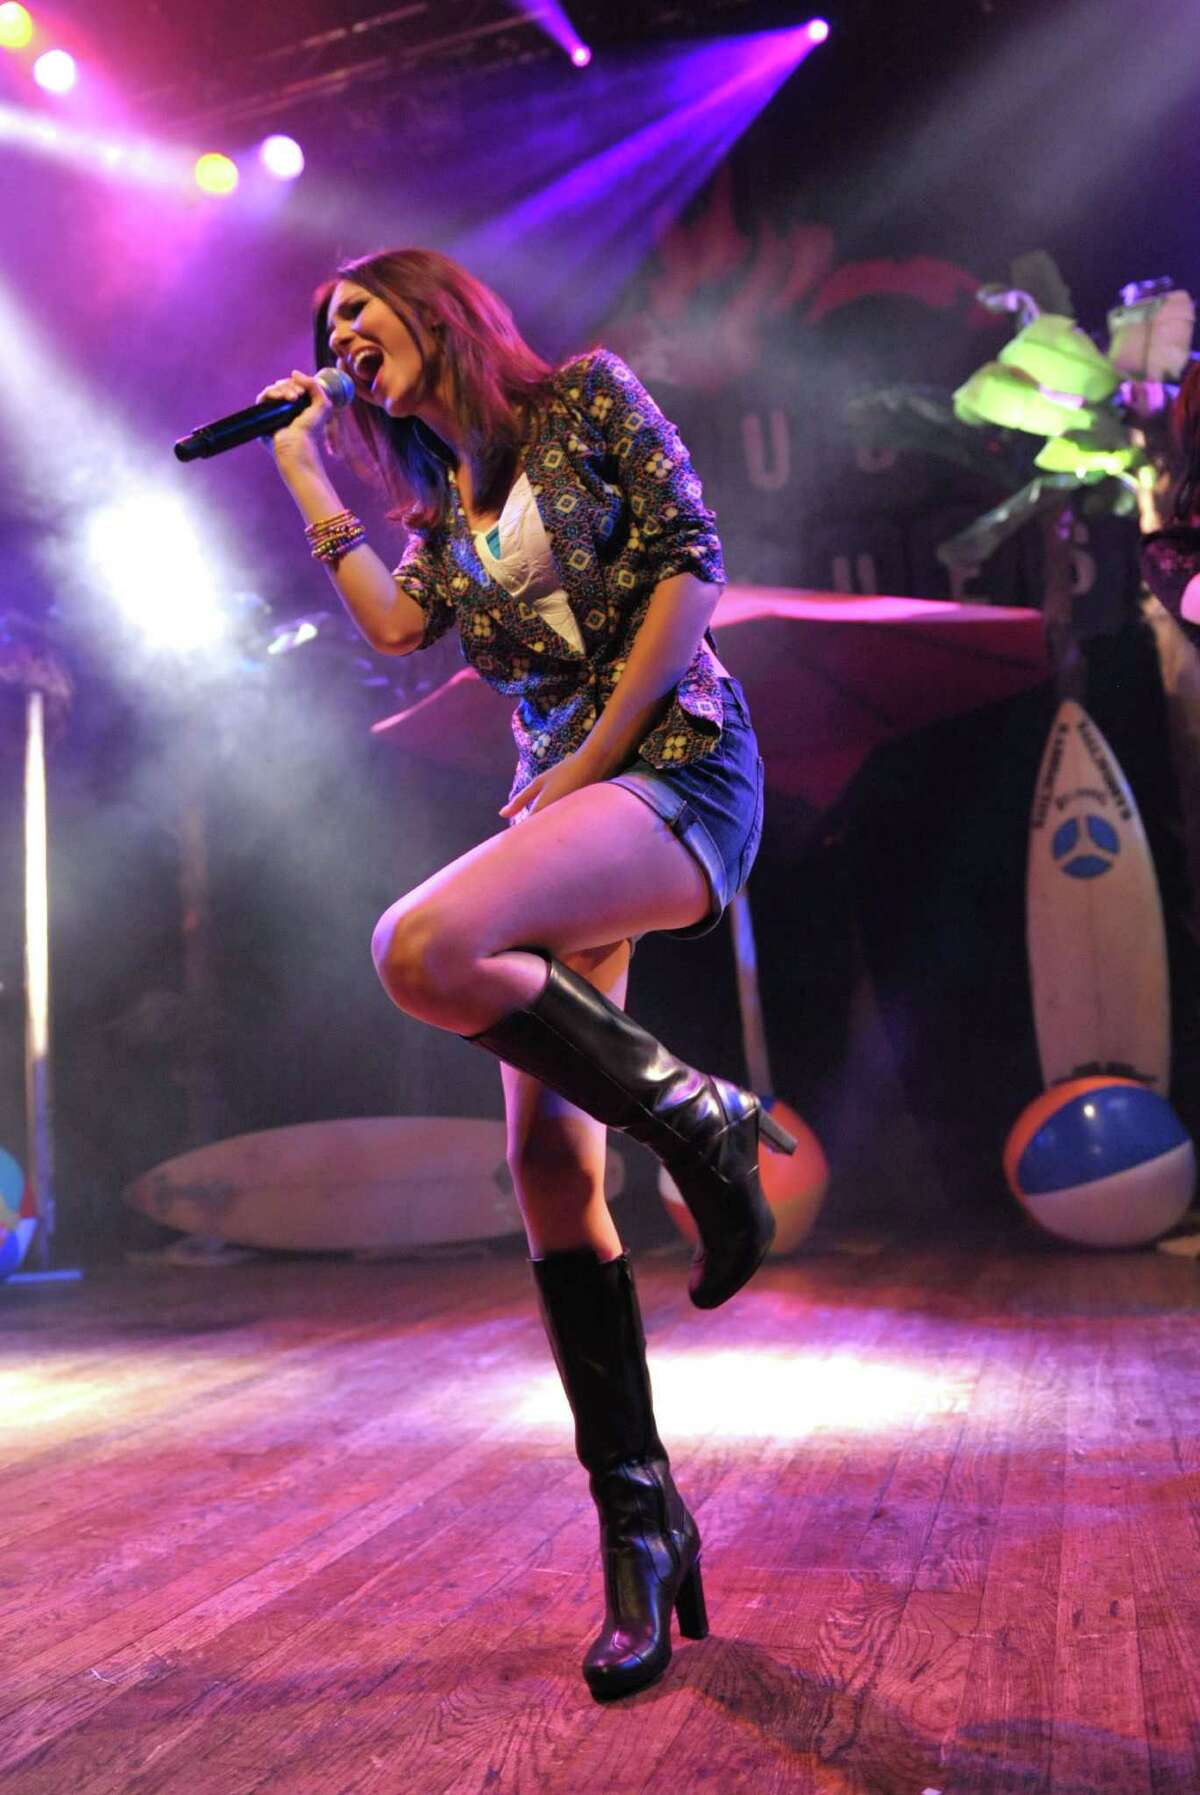 Victoria Justice performs at the House of Blues on Monday, April 1, 2013 in Los Angeles. Big Time Rush and Victoria Justice announced that they will be touring together this summer on the